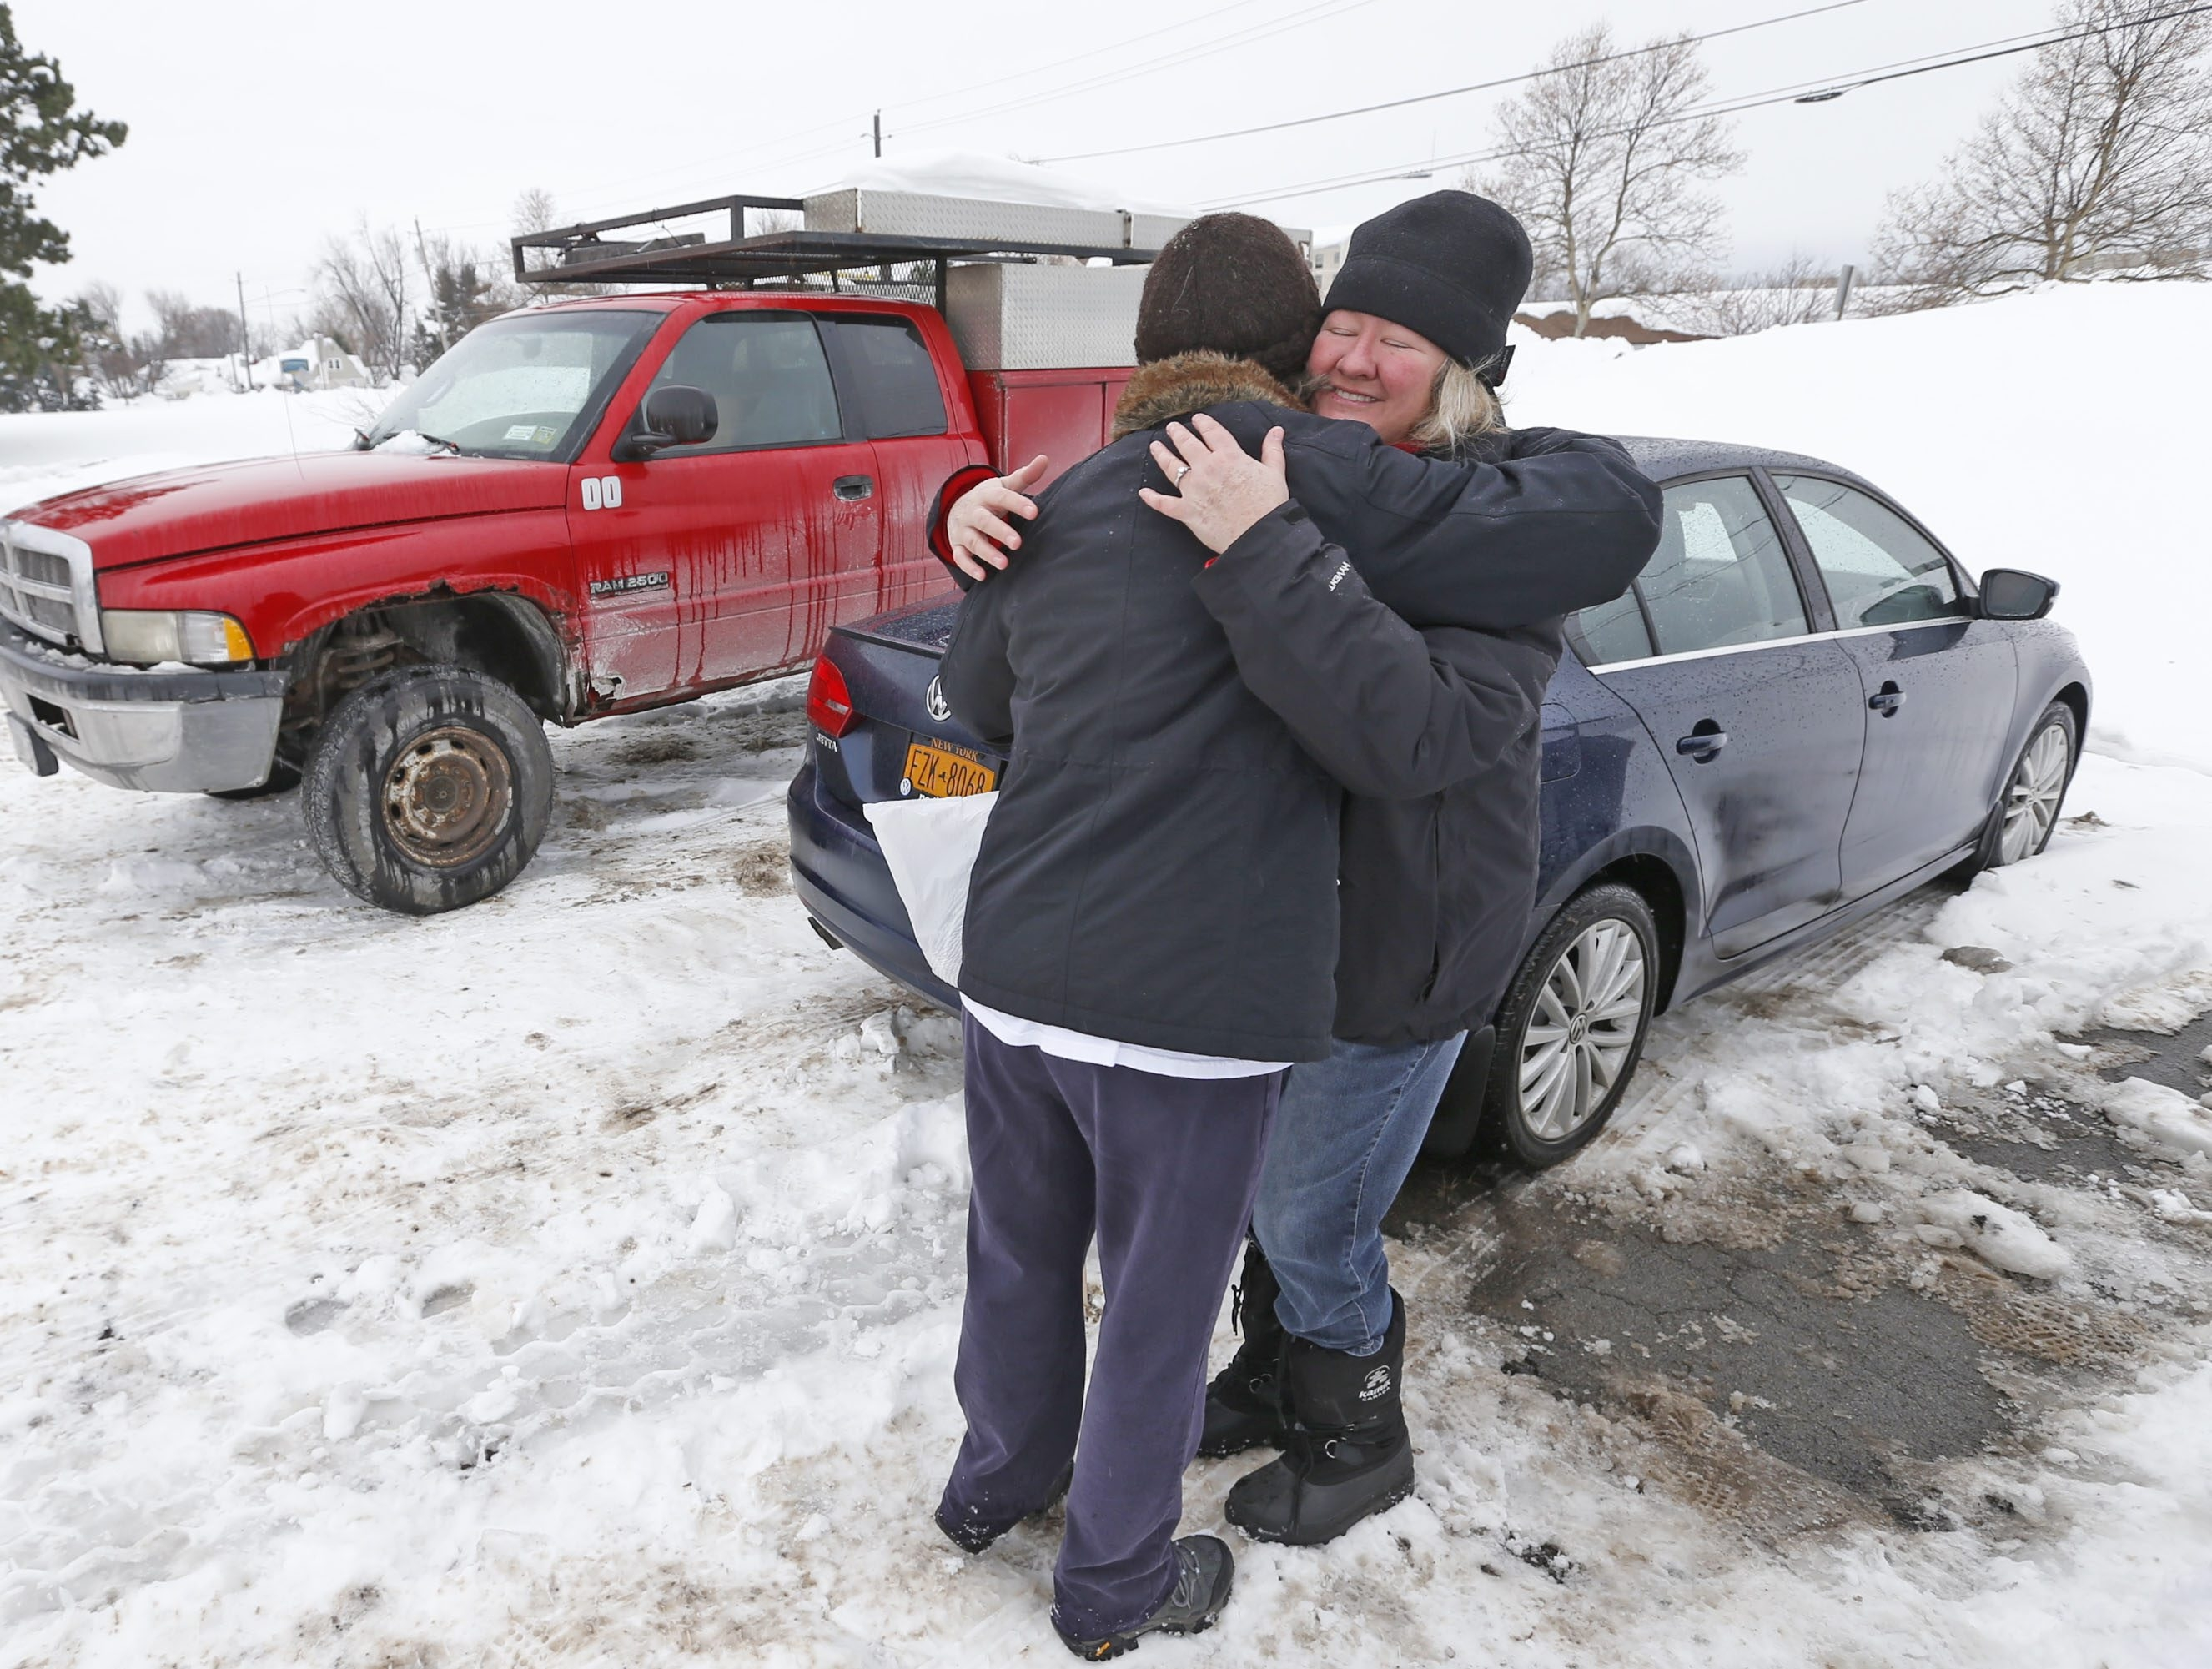 Kathy Schrecongast of East Aurora, left, hugs her sister-in-law Carol Alex in the old Seneca Mall parking lot Saturday, where they were retrieving Schrecongast's car.